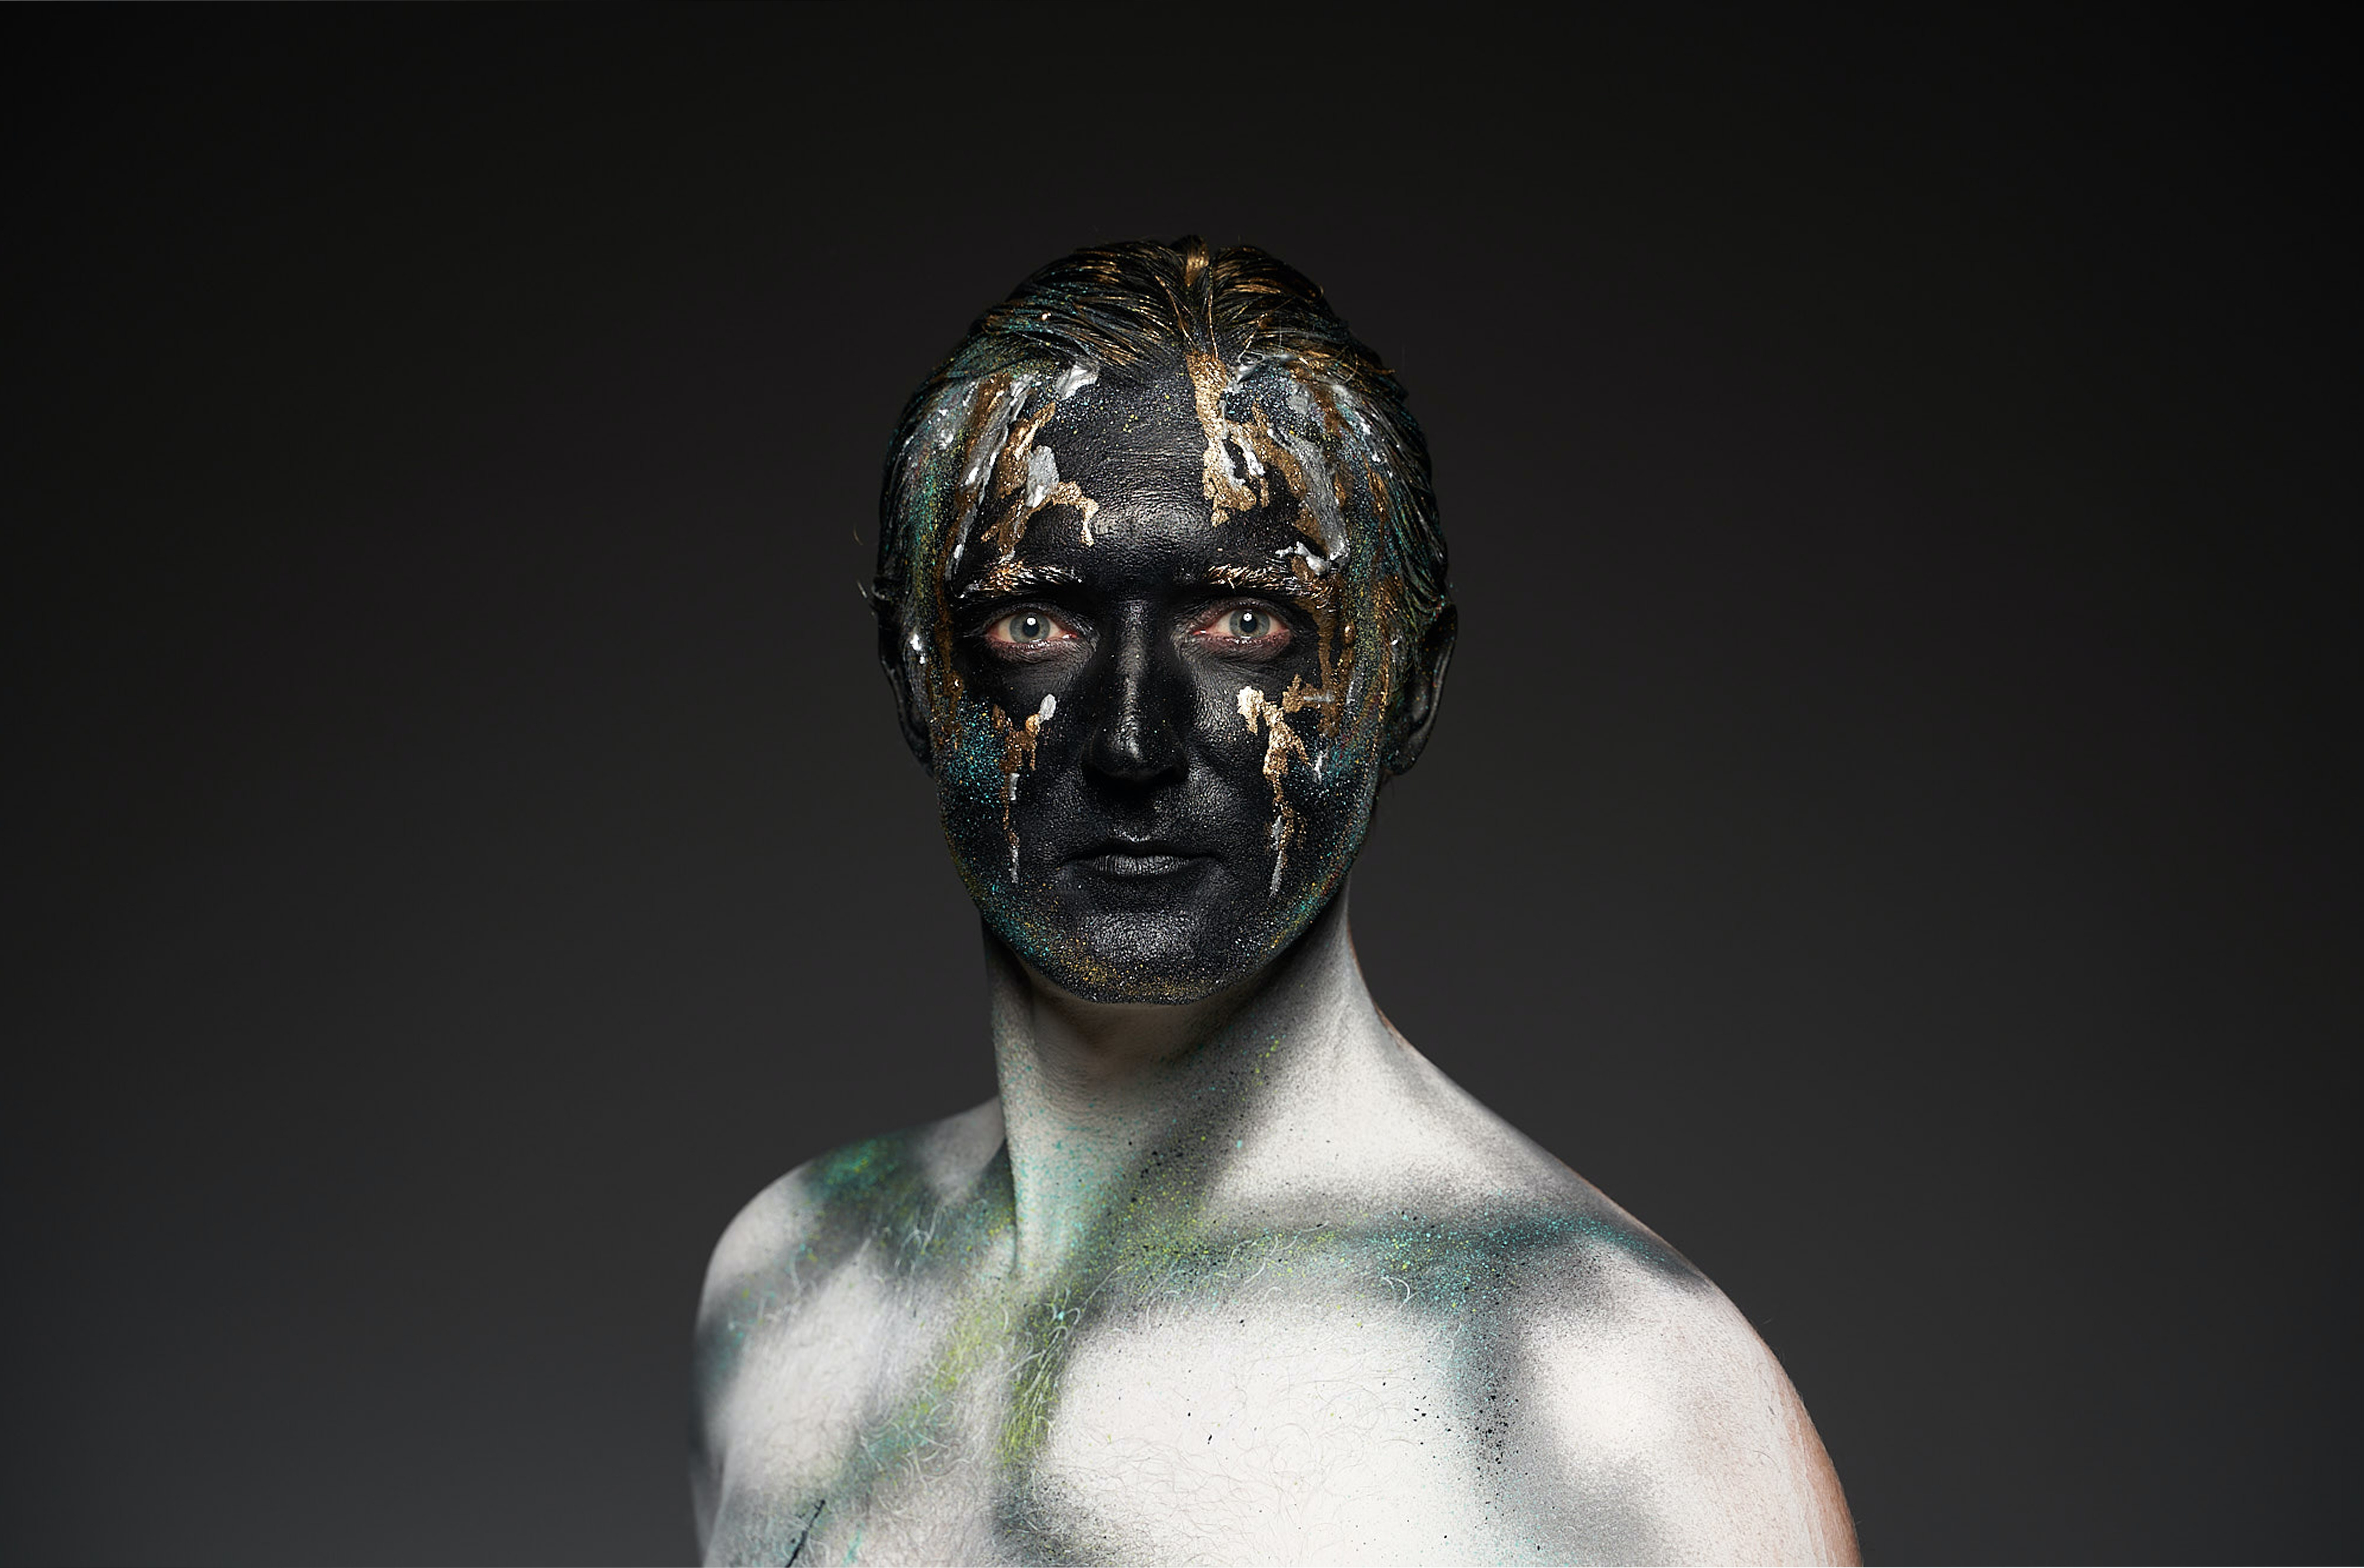 Man With Black And Gold Body Art Free Stock Photo